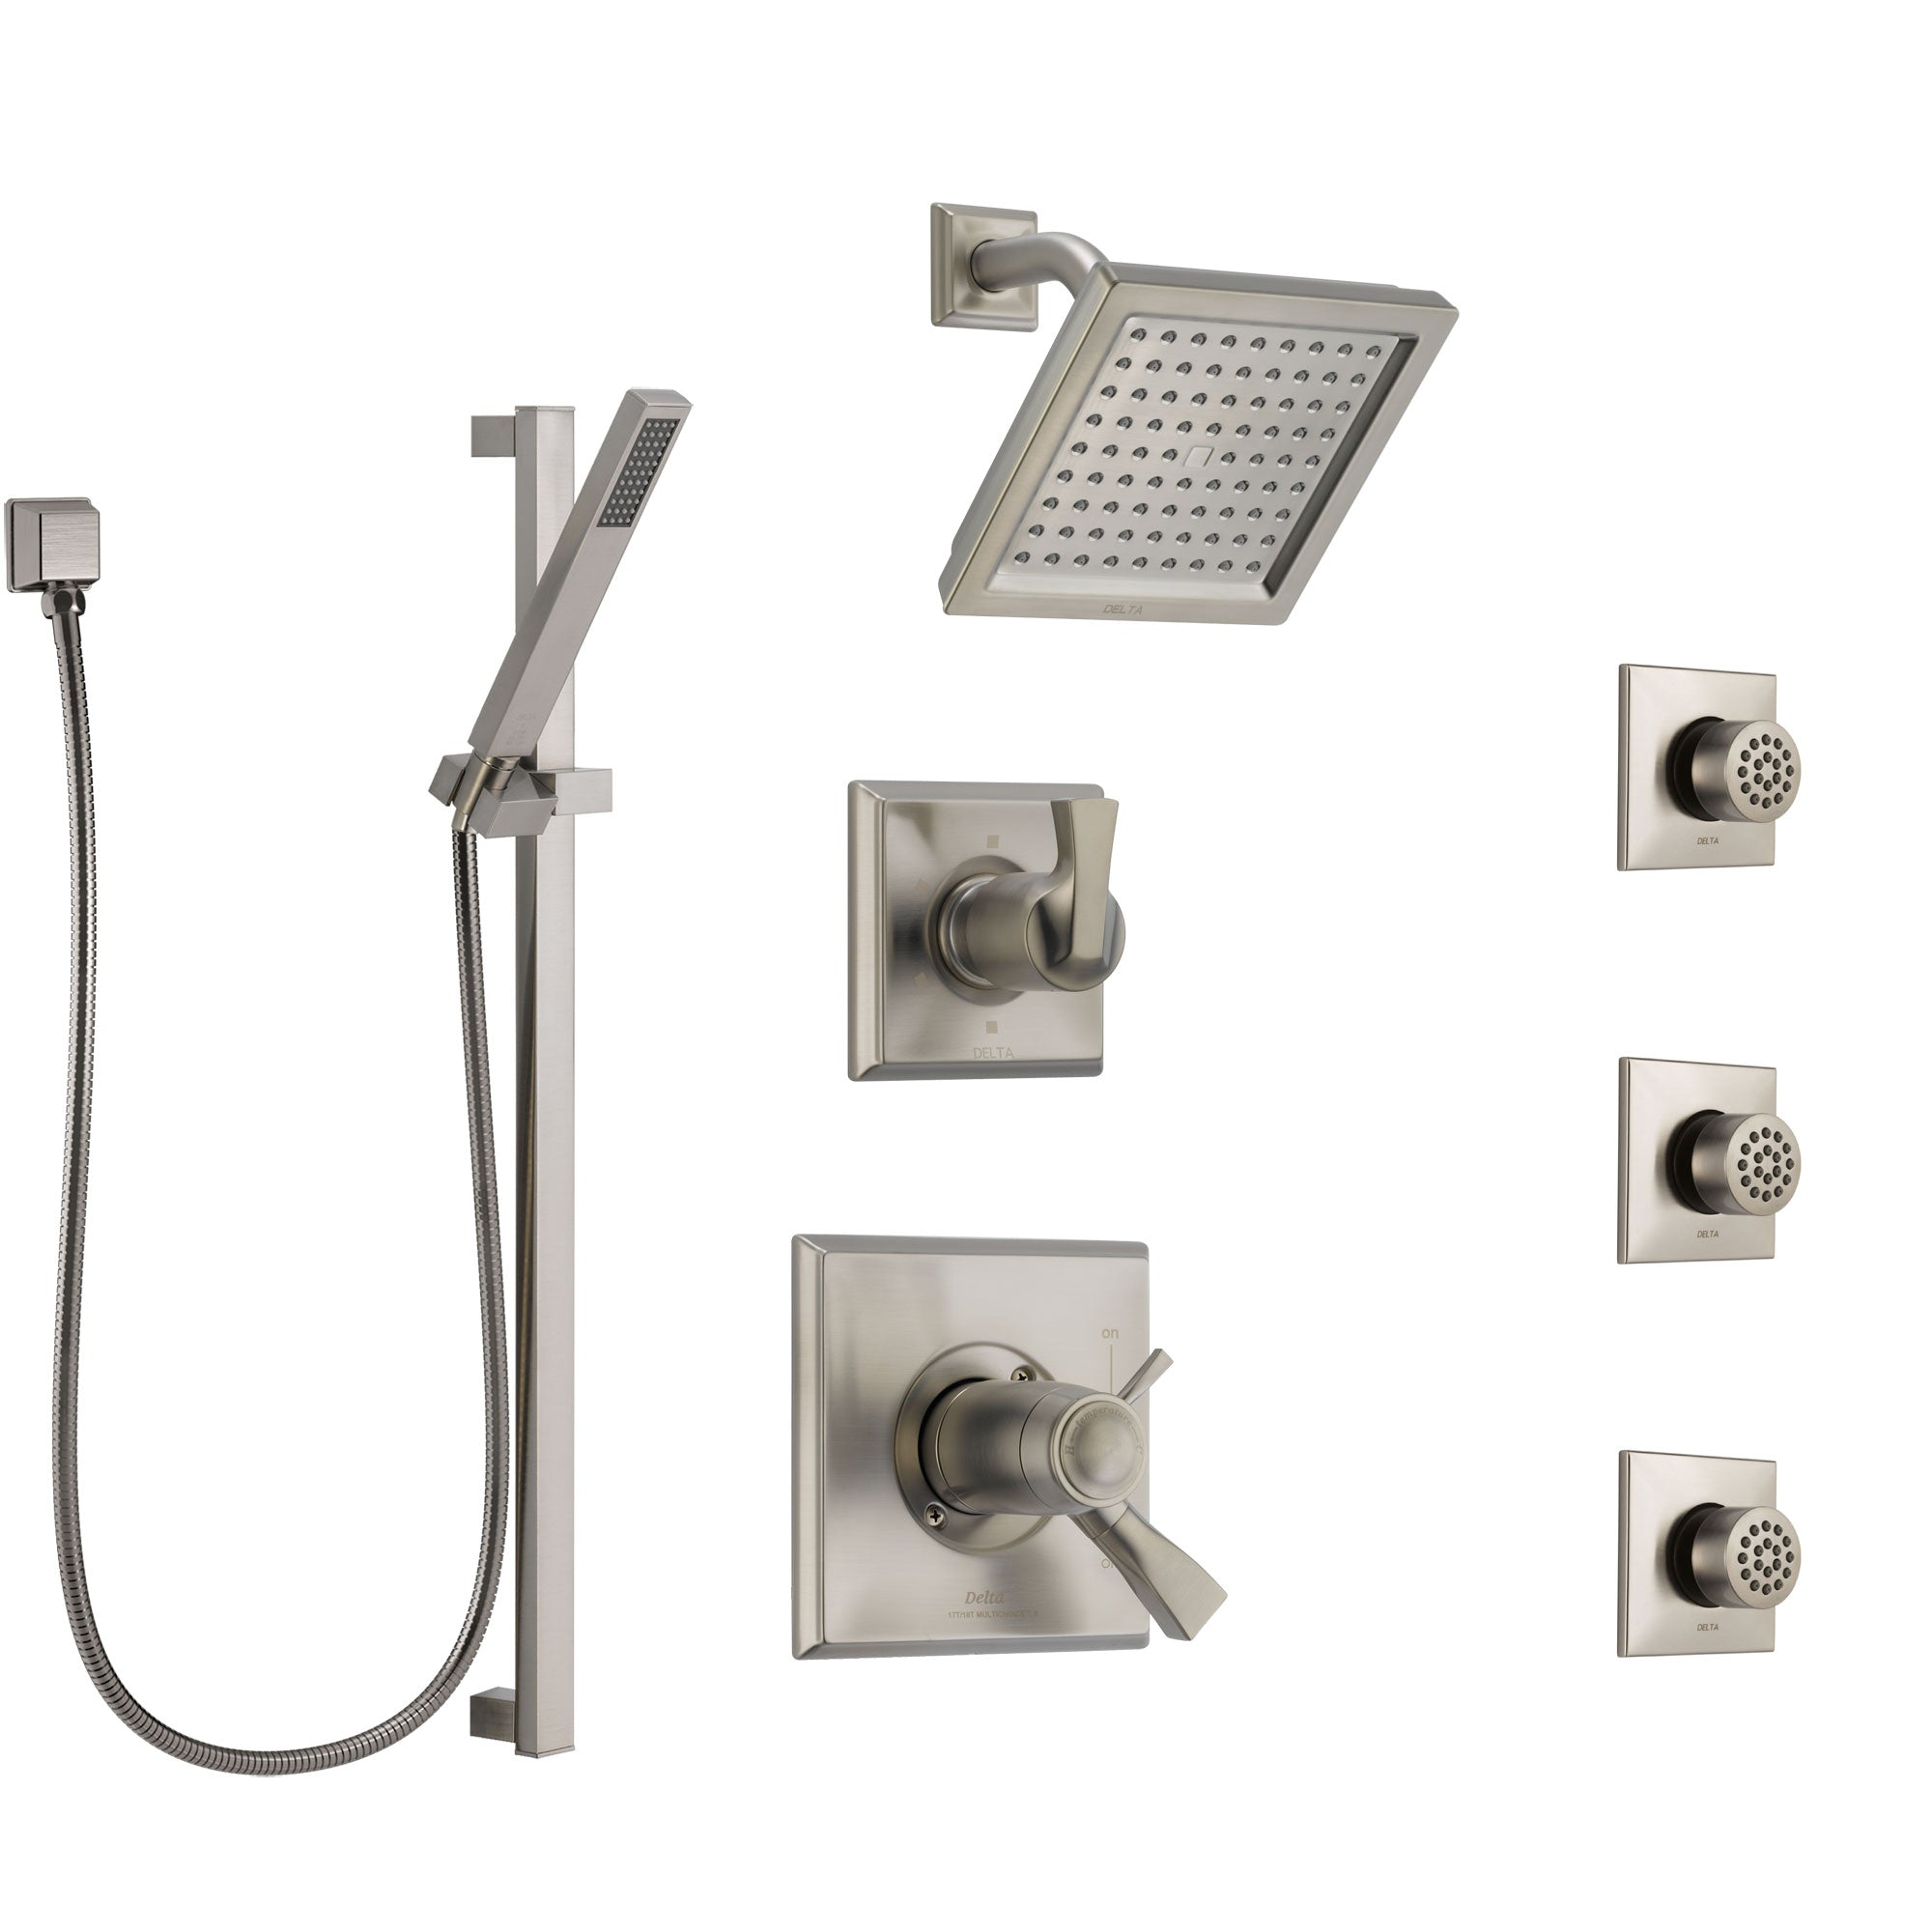 Delta Dryden Dual Thermostatic Control Stainless Steel Finish Shower System, Diverter, Showerhead, 3 Body Sprays, and Hand Shower SS17T2512SS3